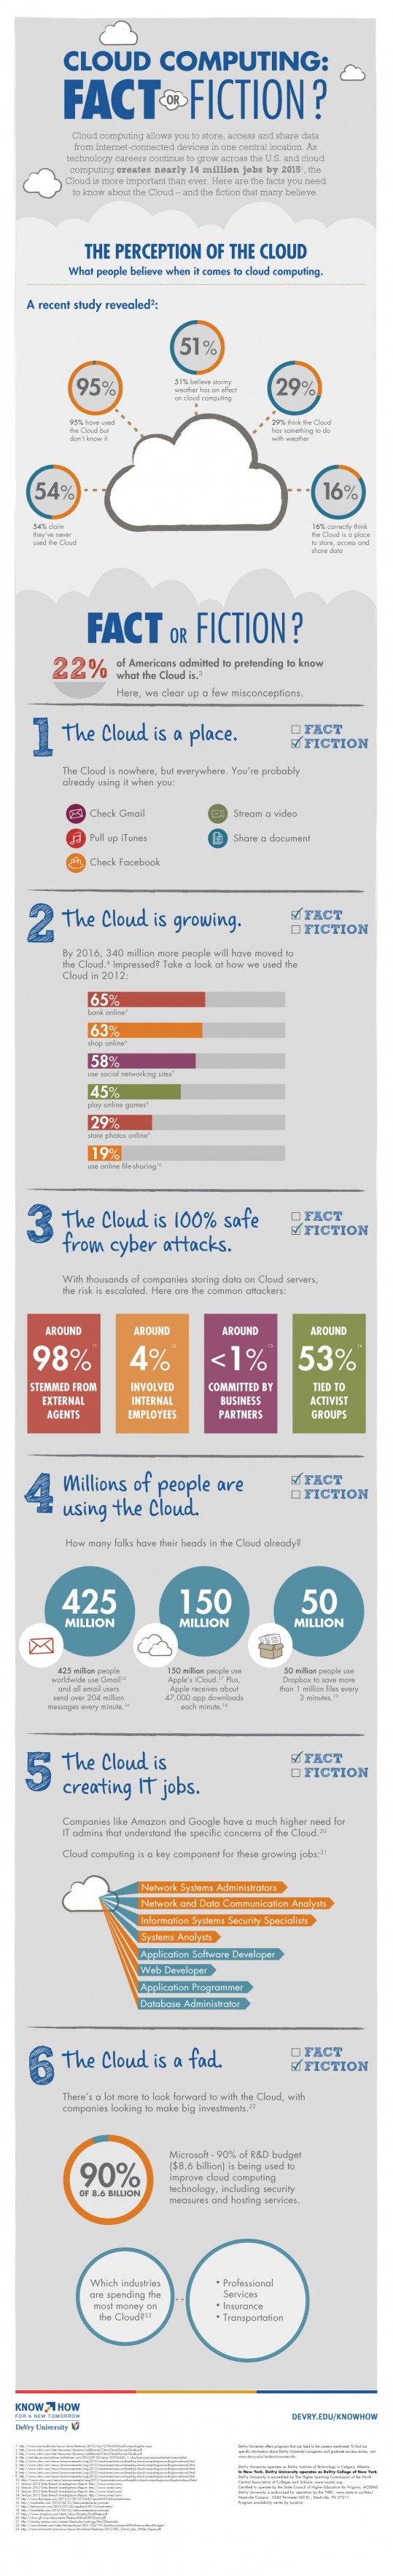 Cloud Computing - Fact or Fiction